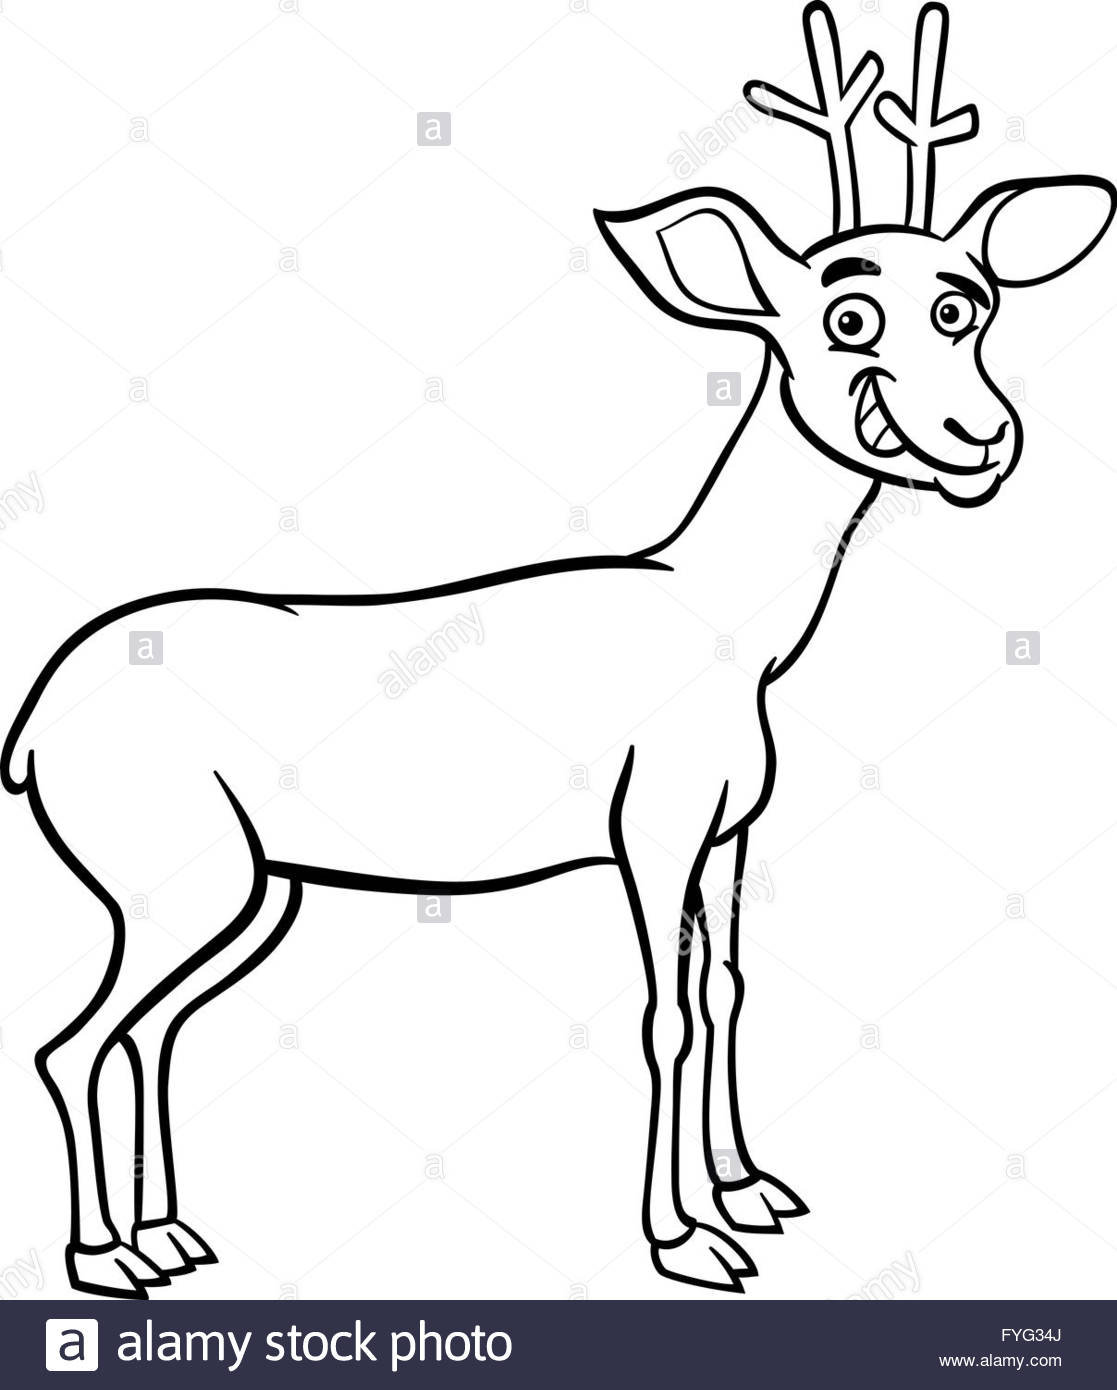 1117x1390 Deer Cartoon Illustration For Coloring Stock Photo, Royalty Free